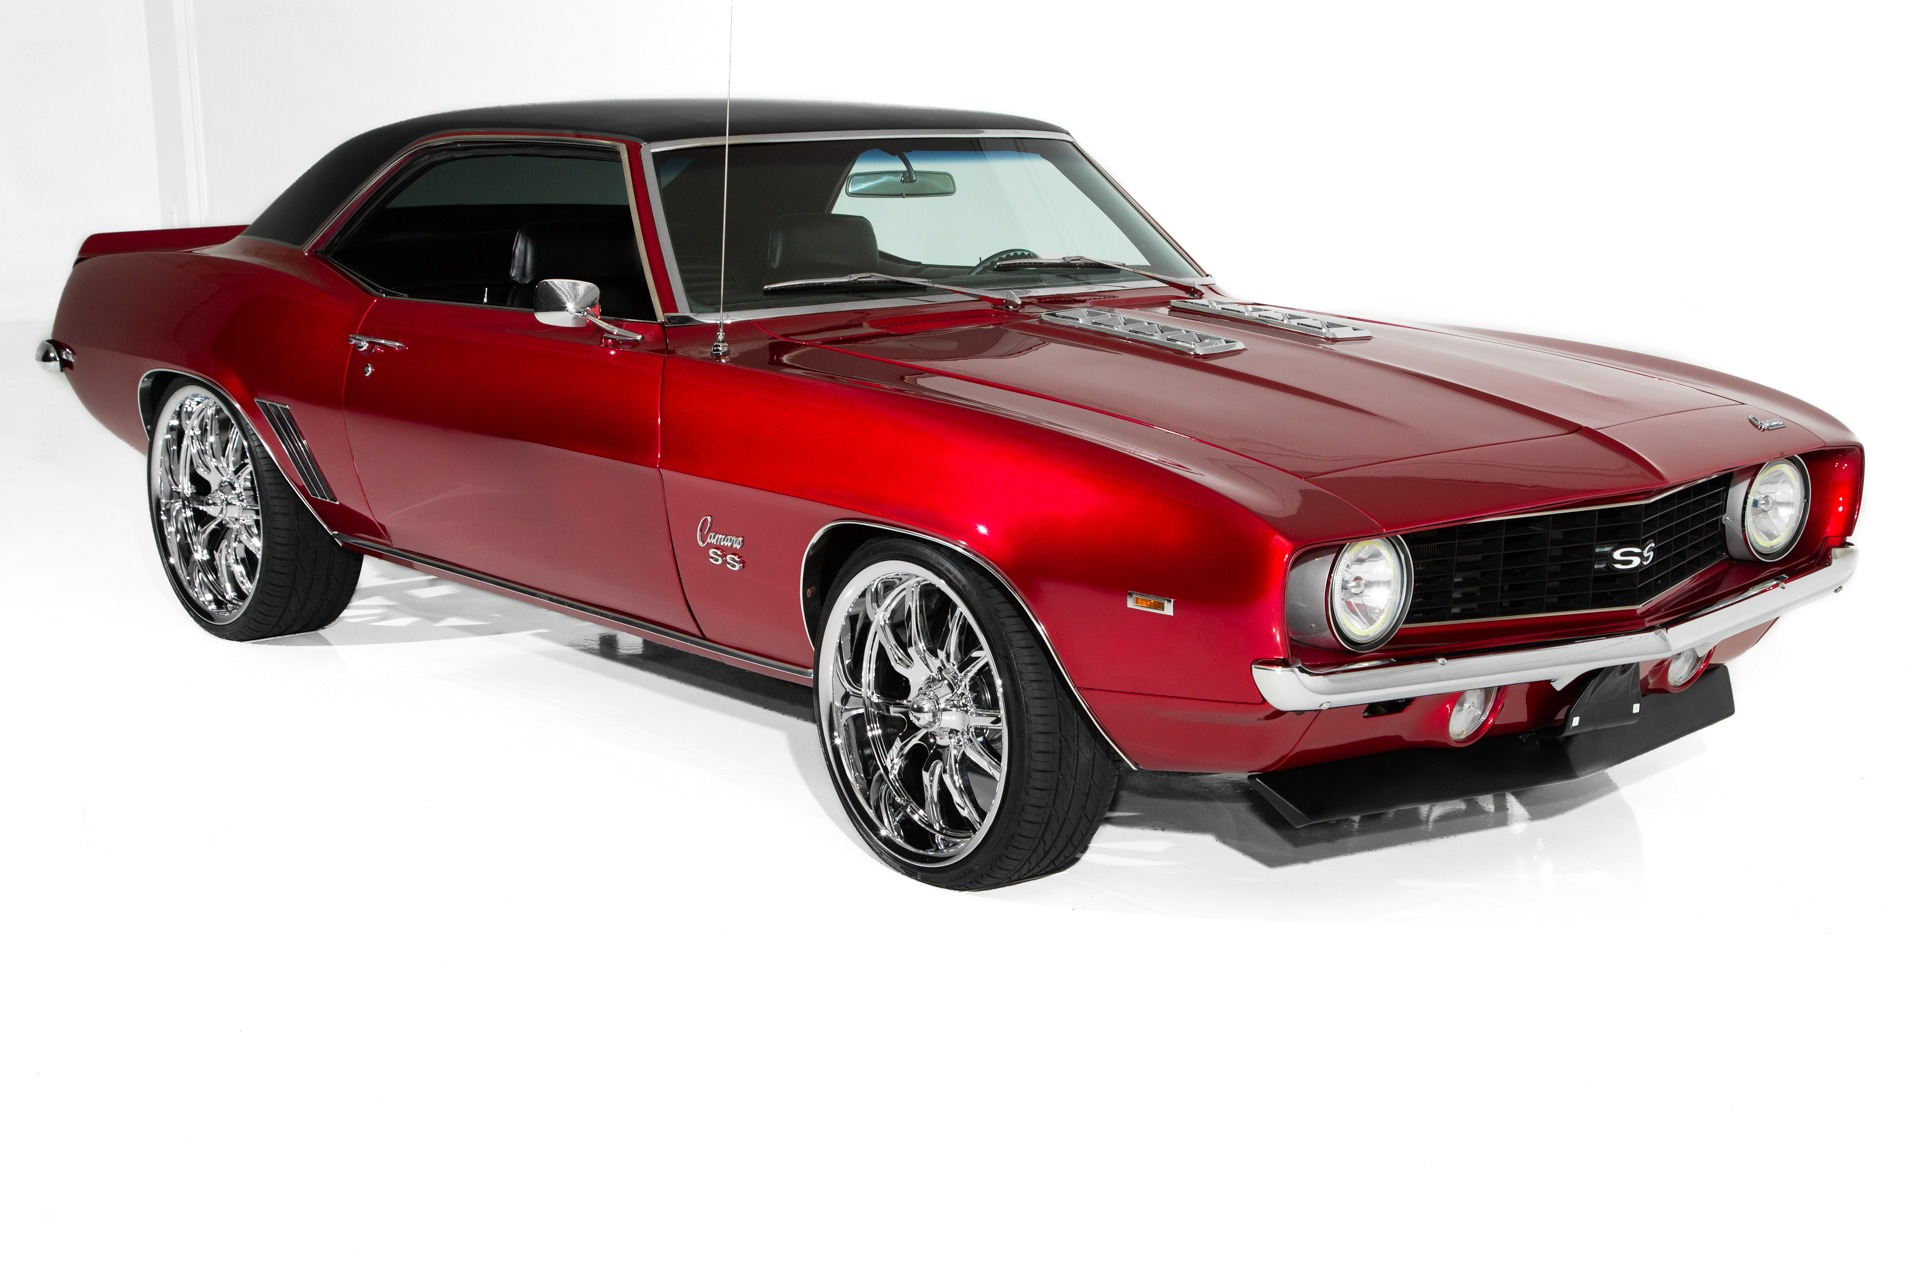 For Sale Used 1969 Chevrolet Camaro Candy Red Pearl Pro-Tour | American Dream Machines Des Moines IA 50309